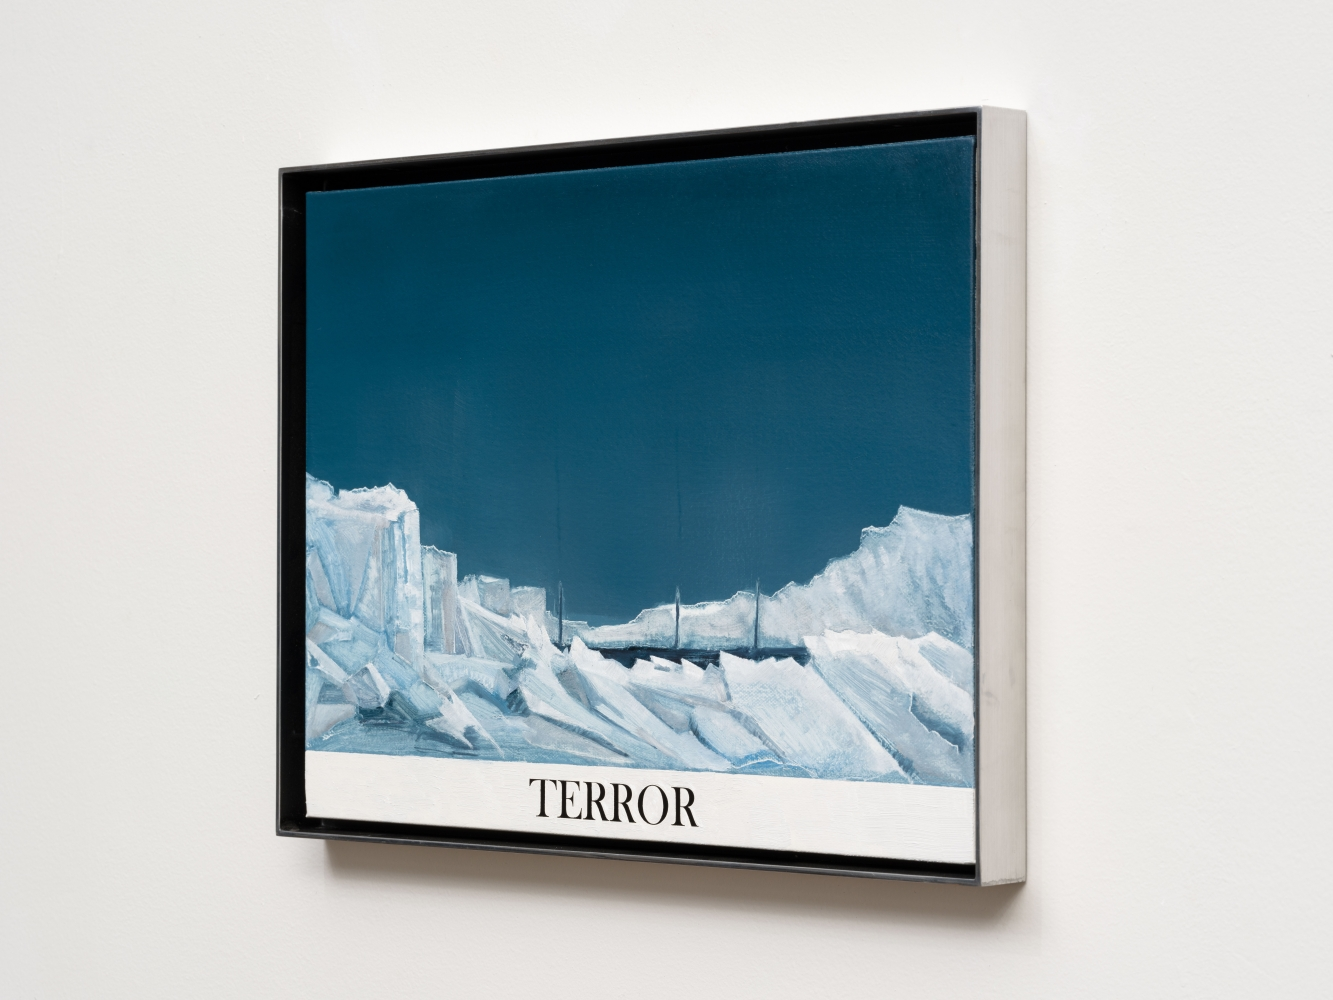 """Rob Reynolds """"Northwest Passage (HMS Terror)"""", 2017, Oil, alkyd and acrylic polymer paint on canvas in welded aluminum artist's frame, Framed Dimensions: 12 3/4 x 16 3/4 inches"""